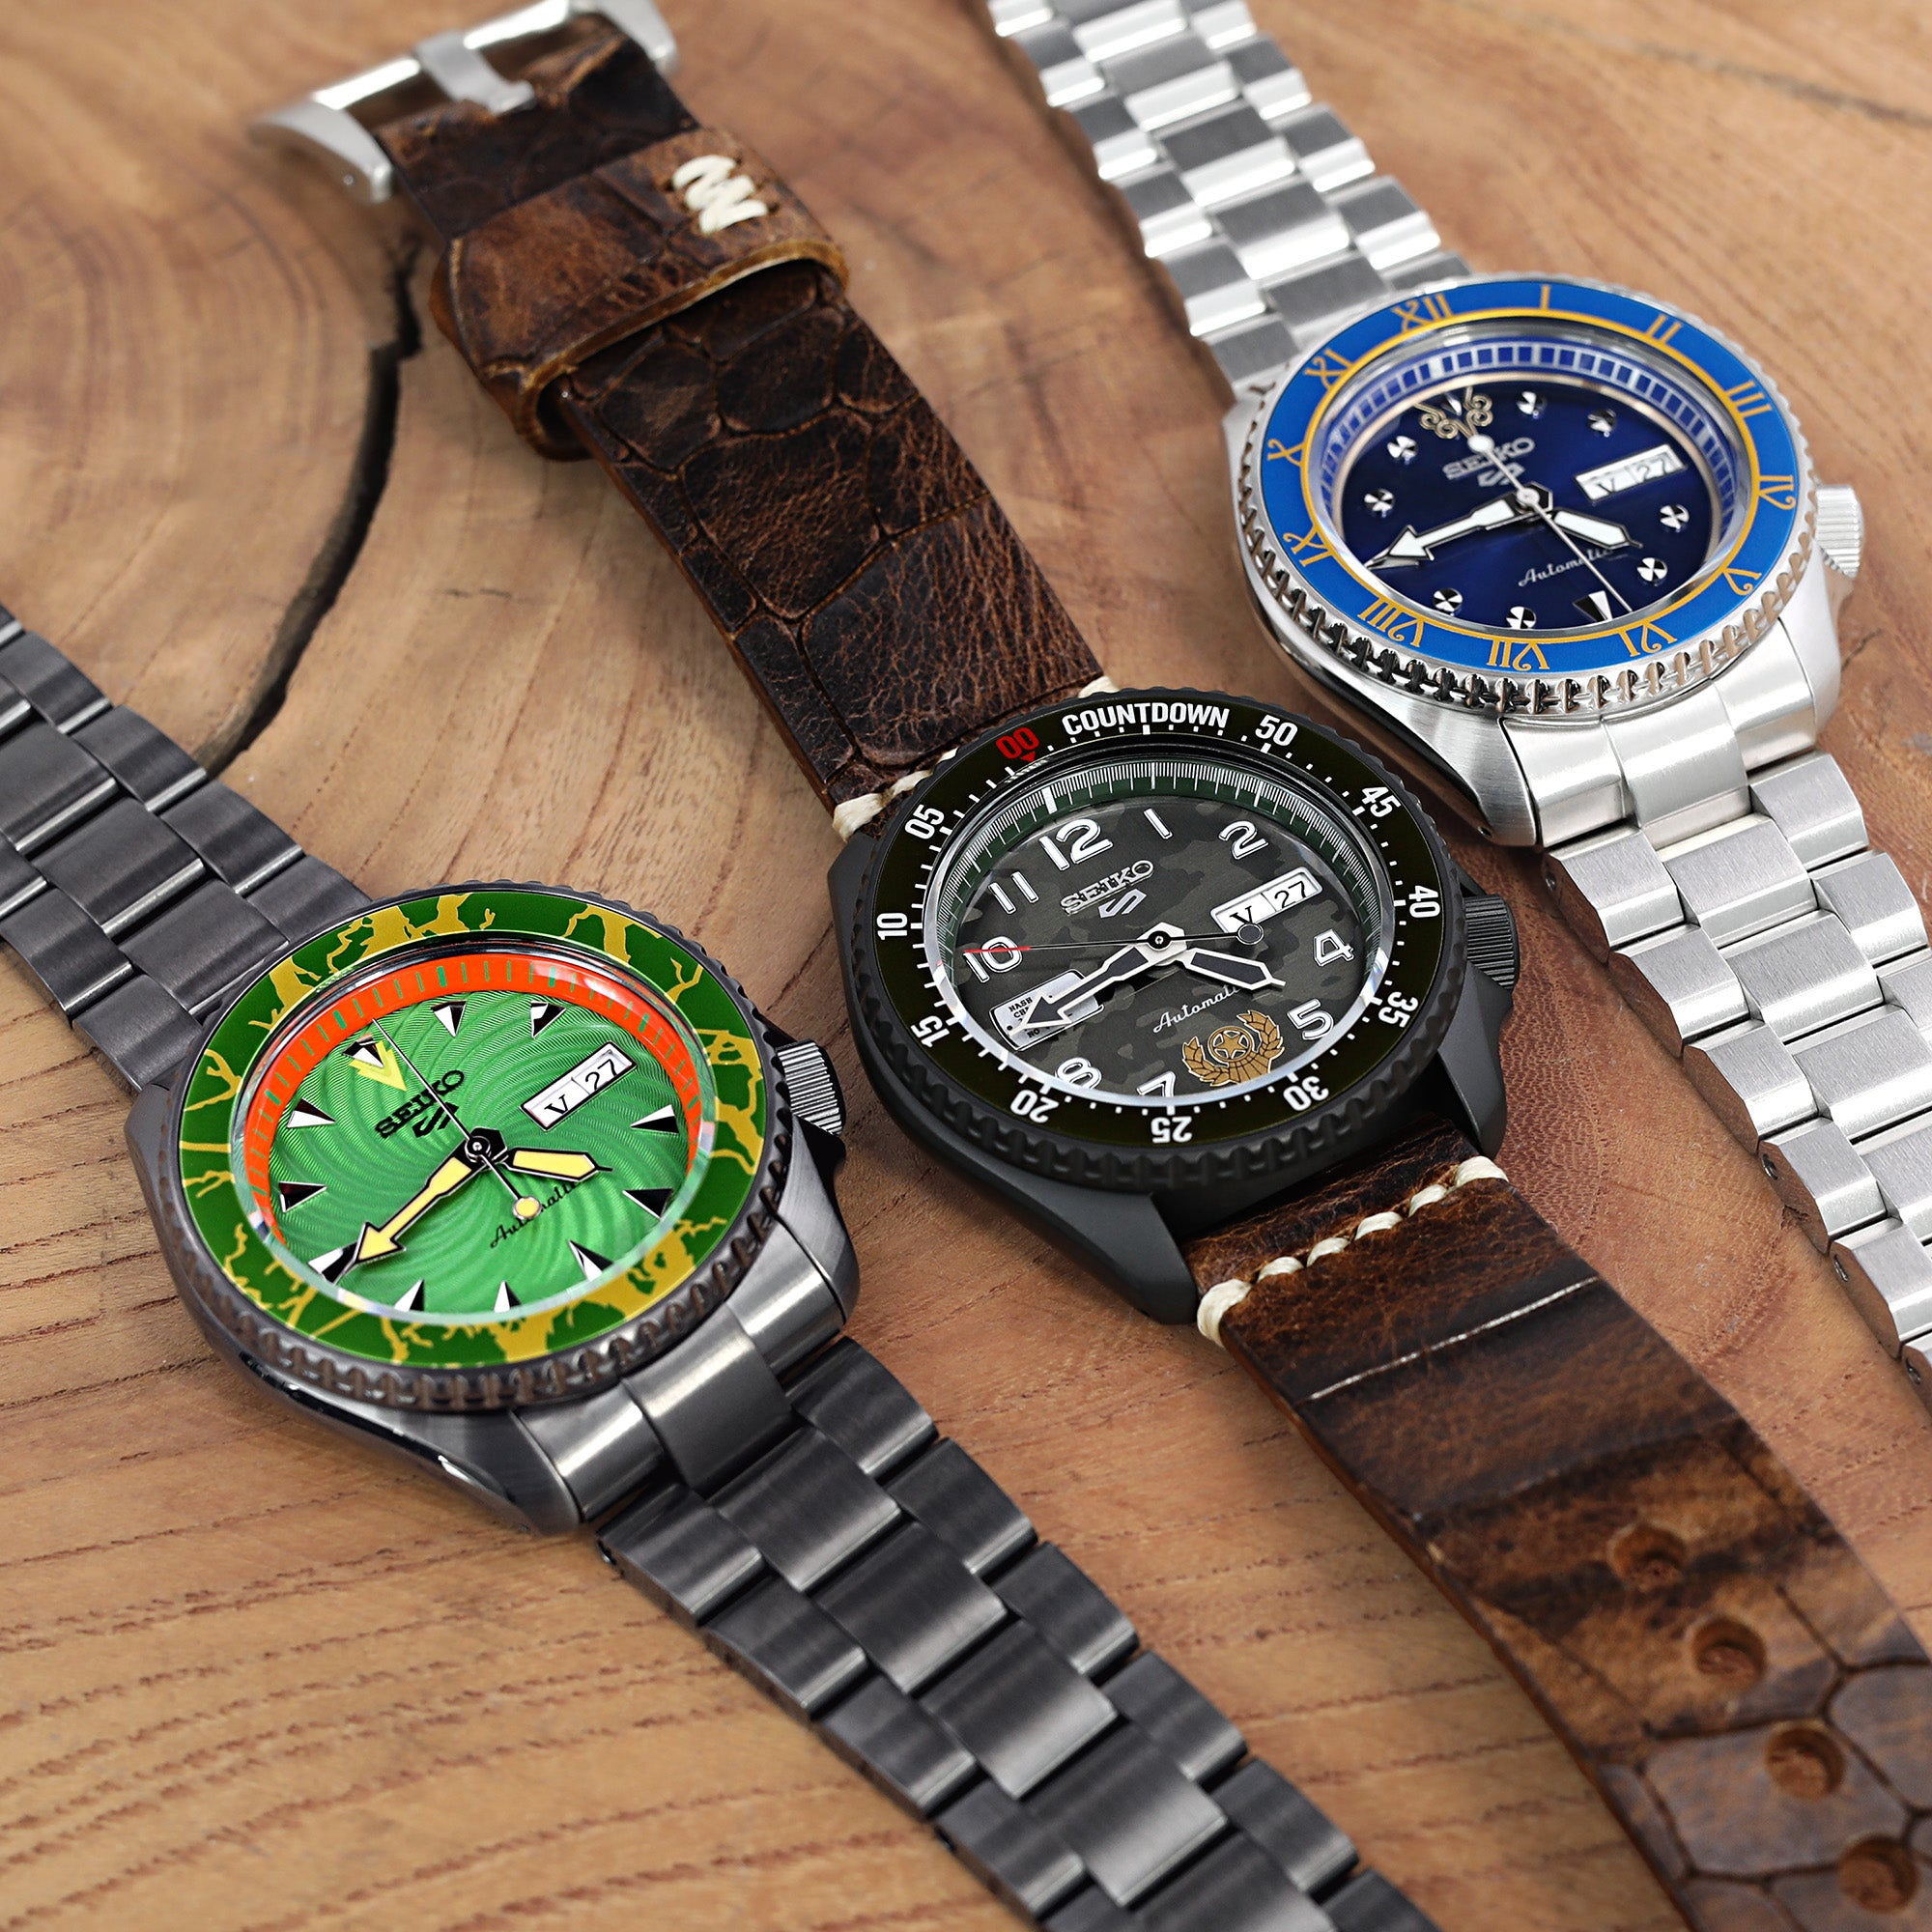 Seiko Street Fighter 5 Sports LE Watches!